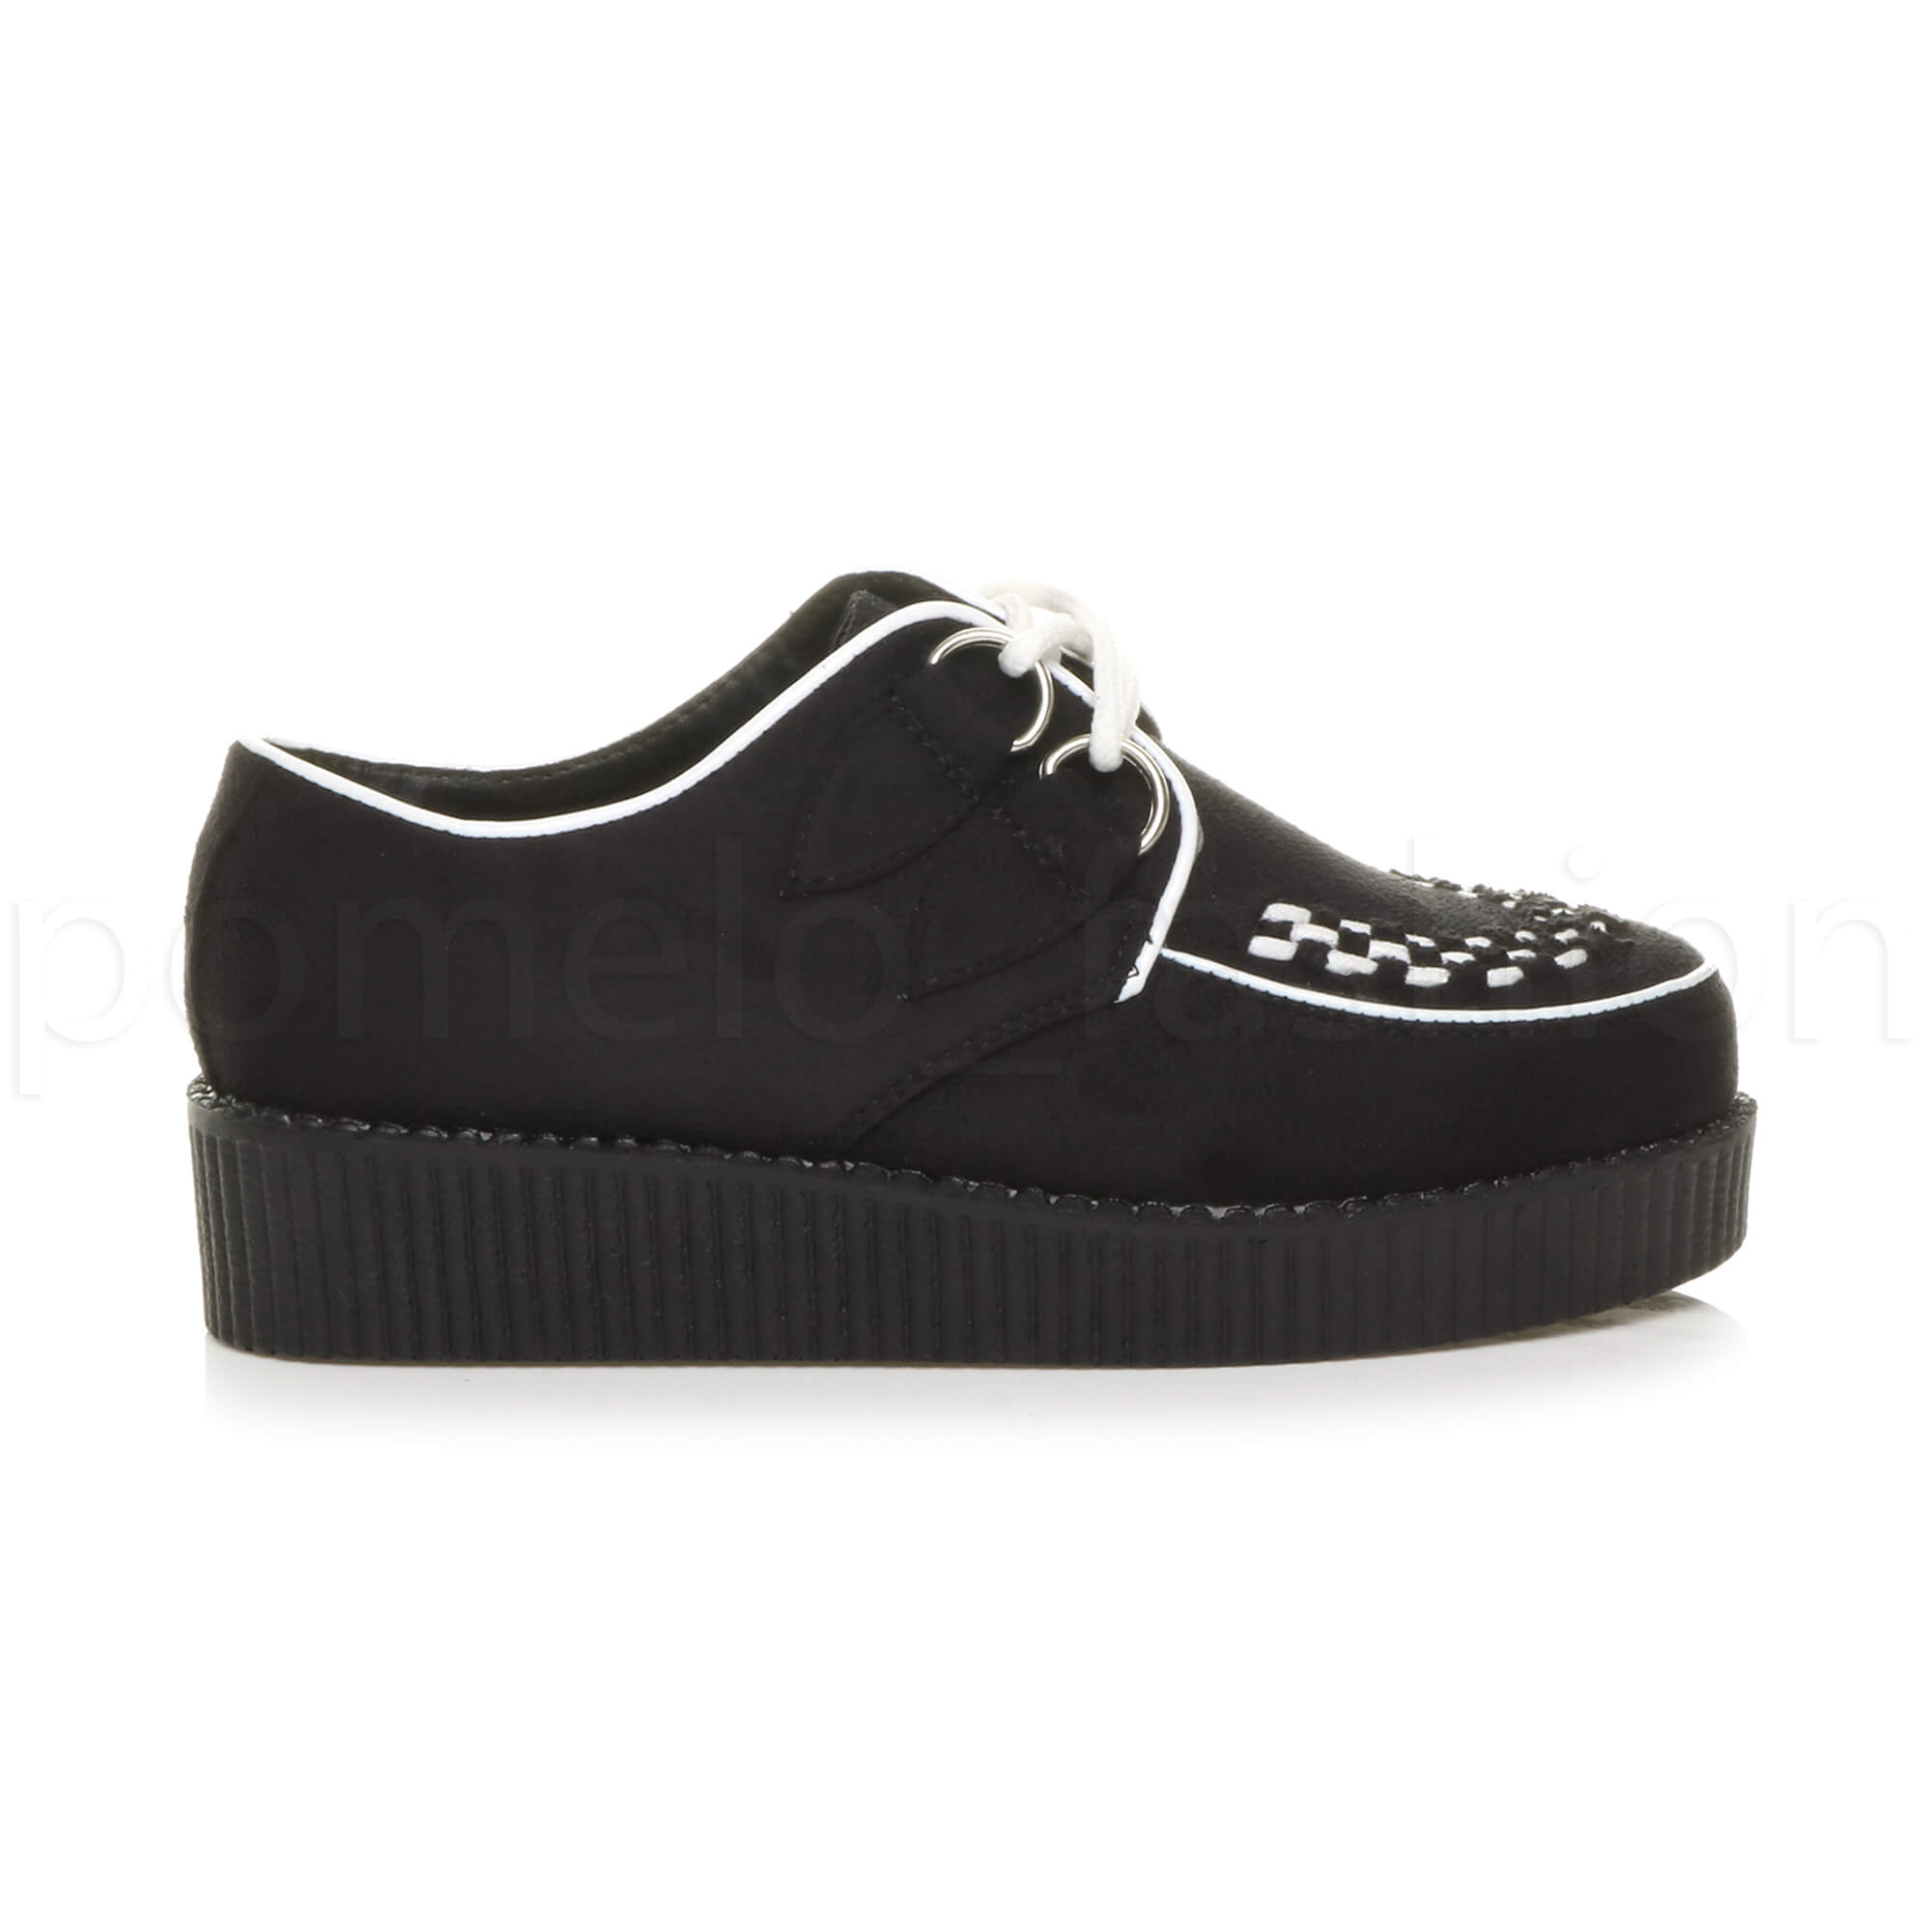 WOMENS-LADIES-FLATFORM-PLATFORM-LACE-UP-GOTH-PUNK-BROTHEL-CREEPERS-SHOES-SIZE